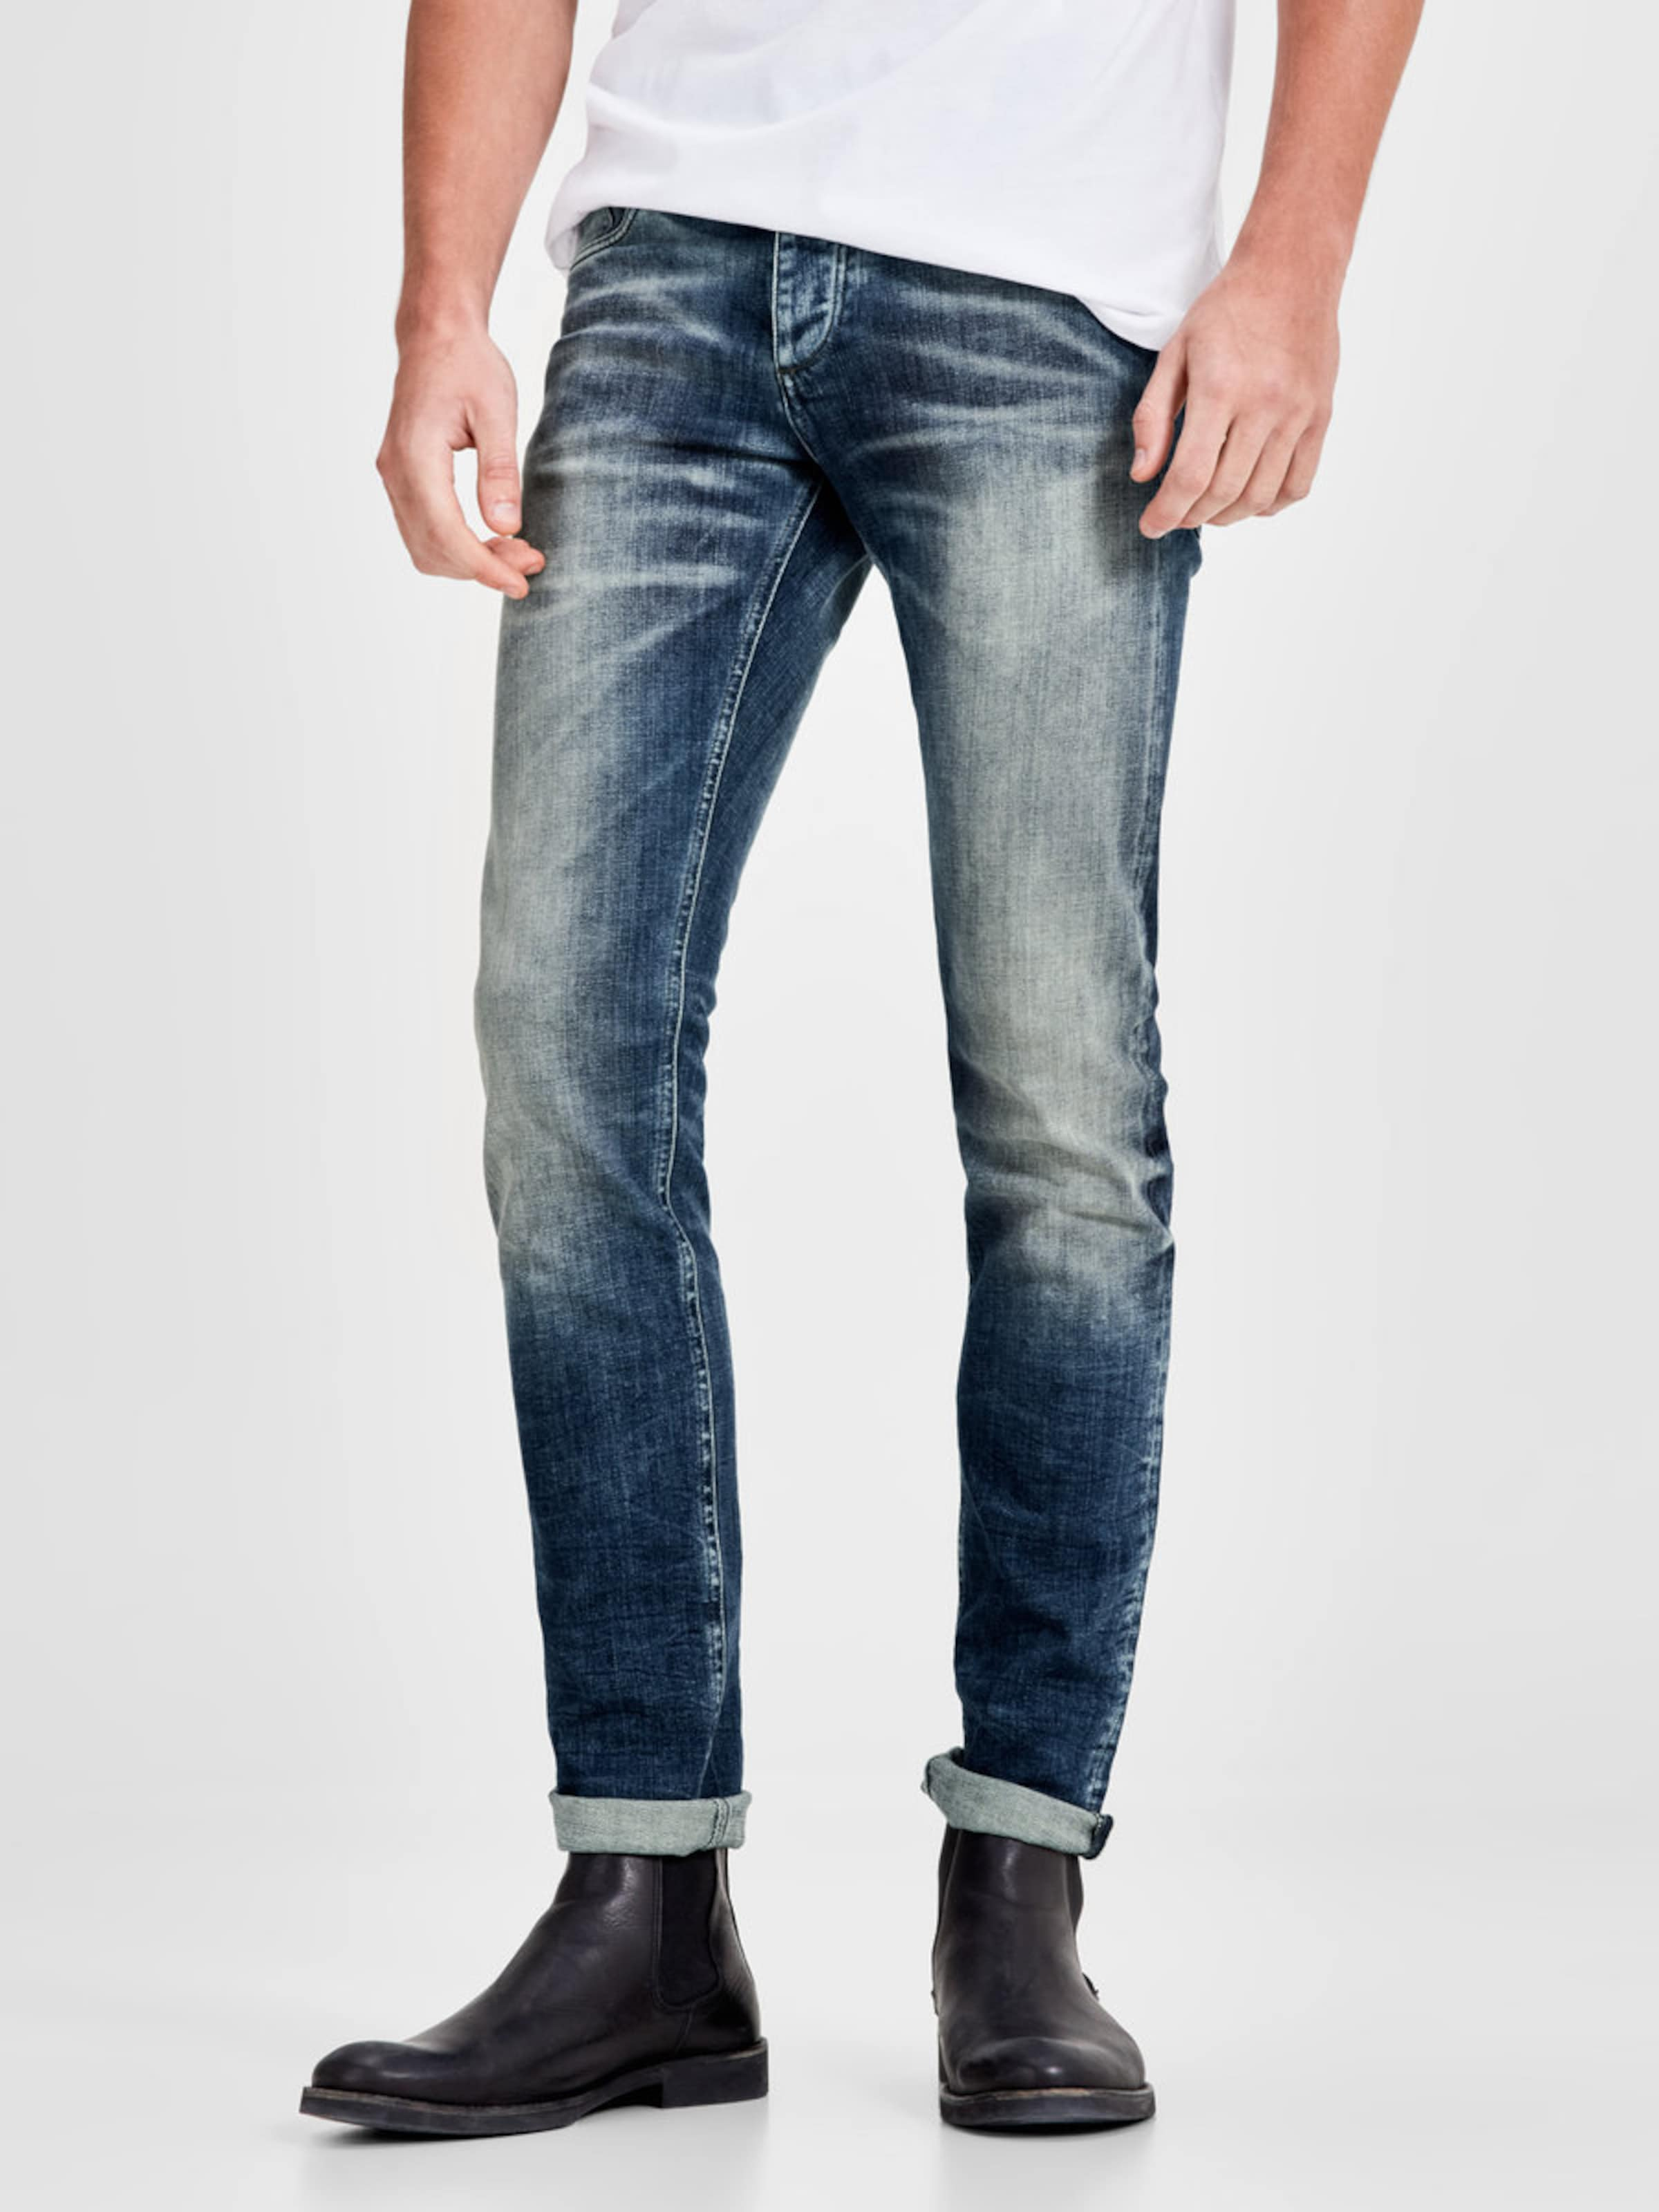 In Blau Jones Jackamp; 887' Original 'glenn Jeans c3S4ARq5jL